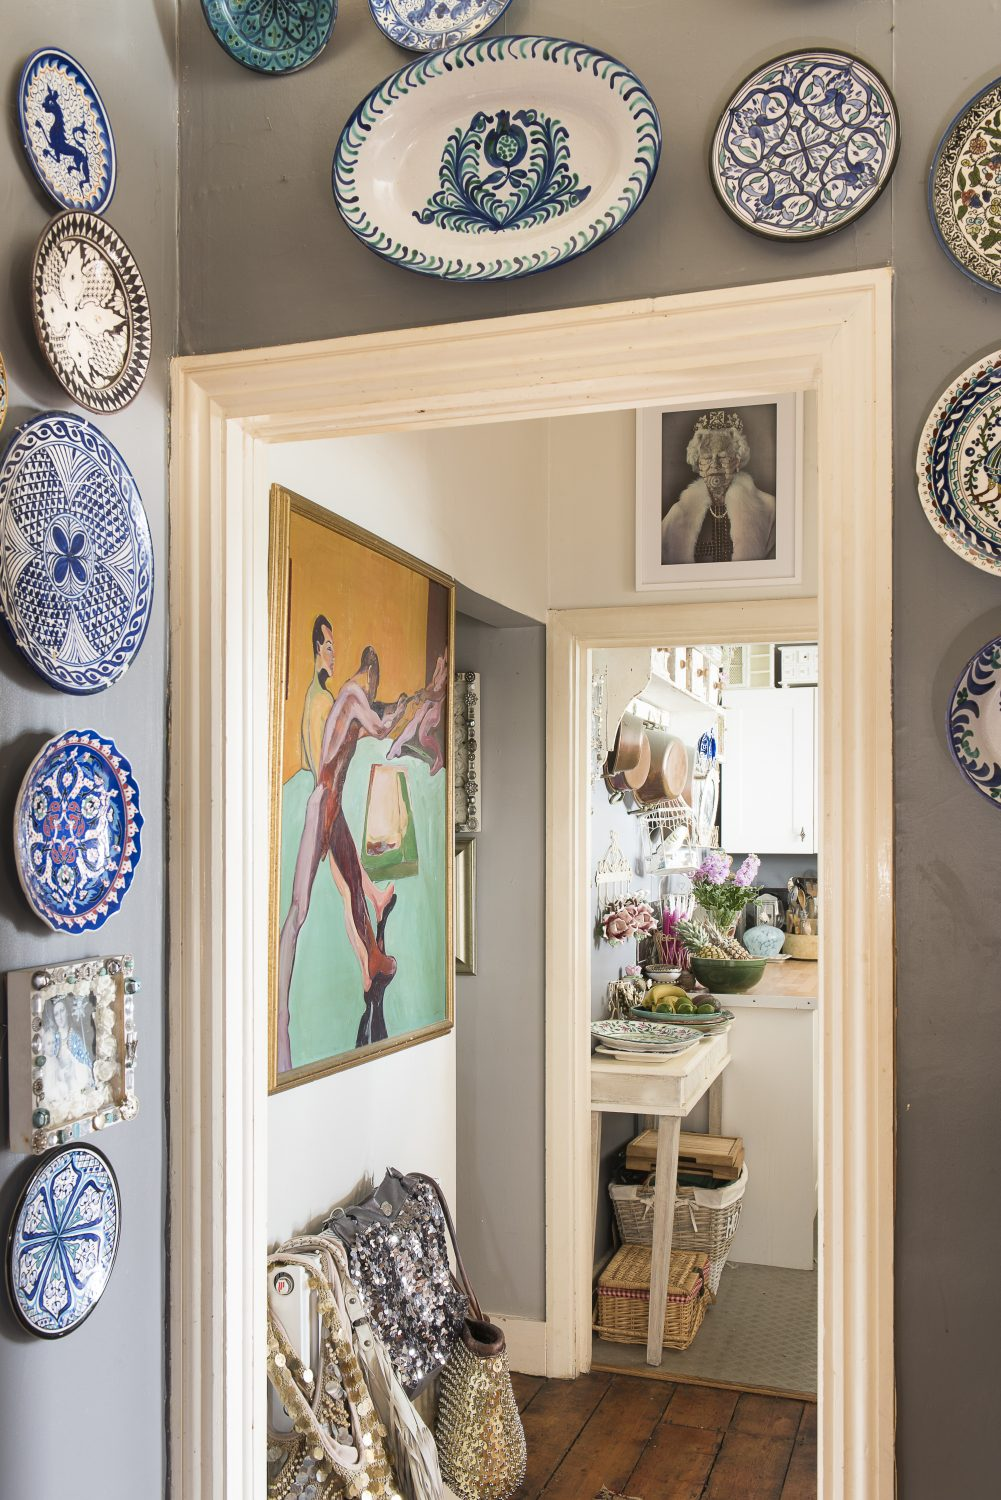 Inspired by life in Spain, Sassy has no dinner service, but simply takes her decorated plates from the wall when entertaining